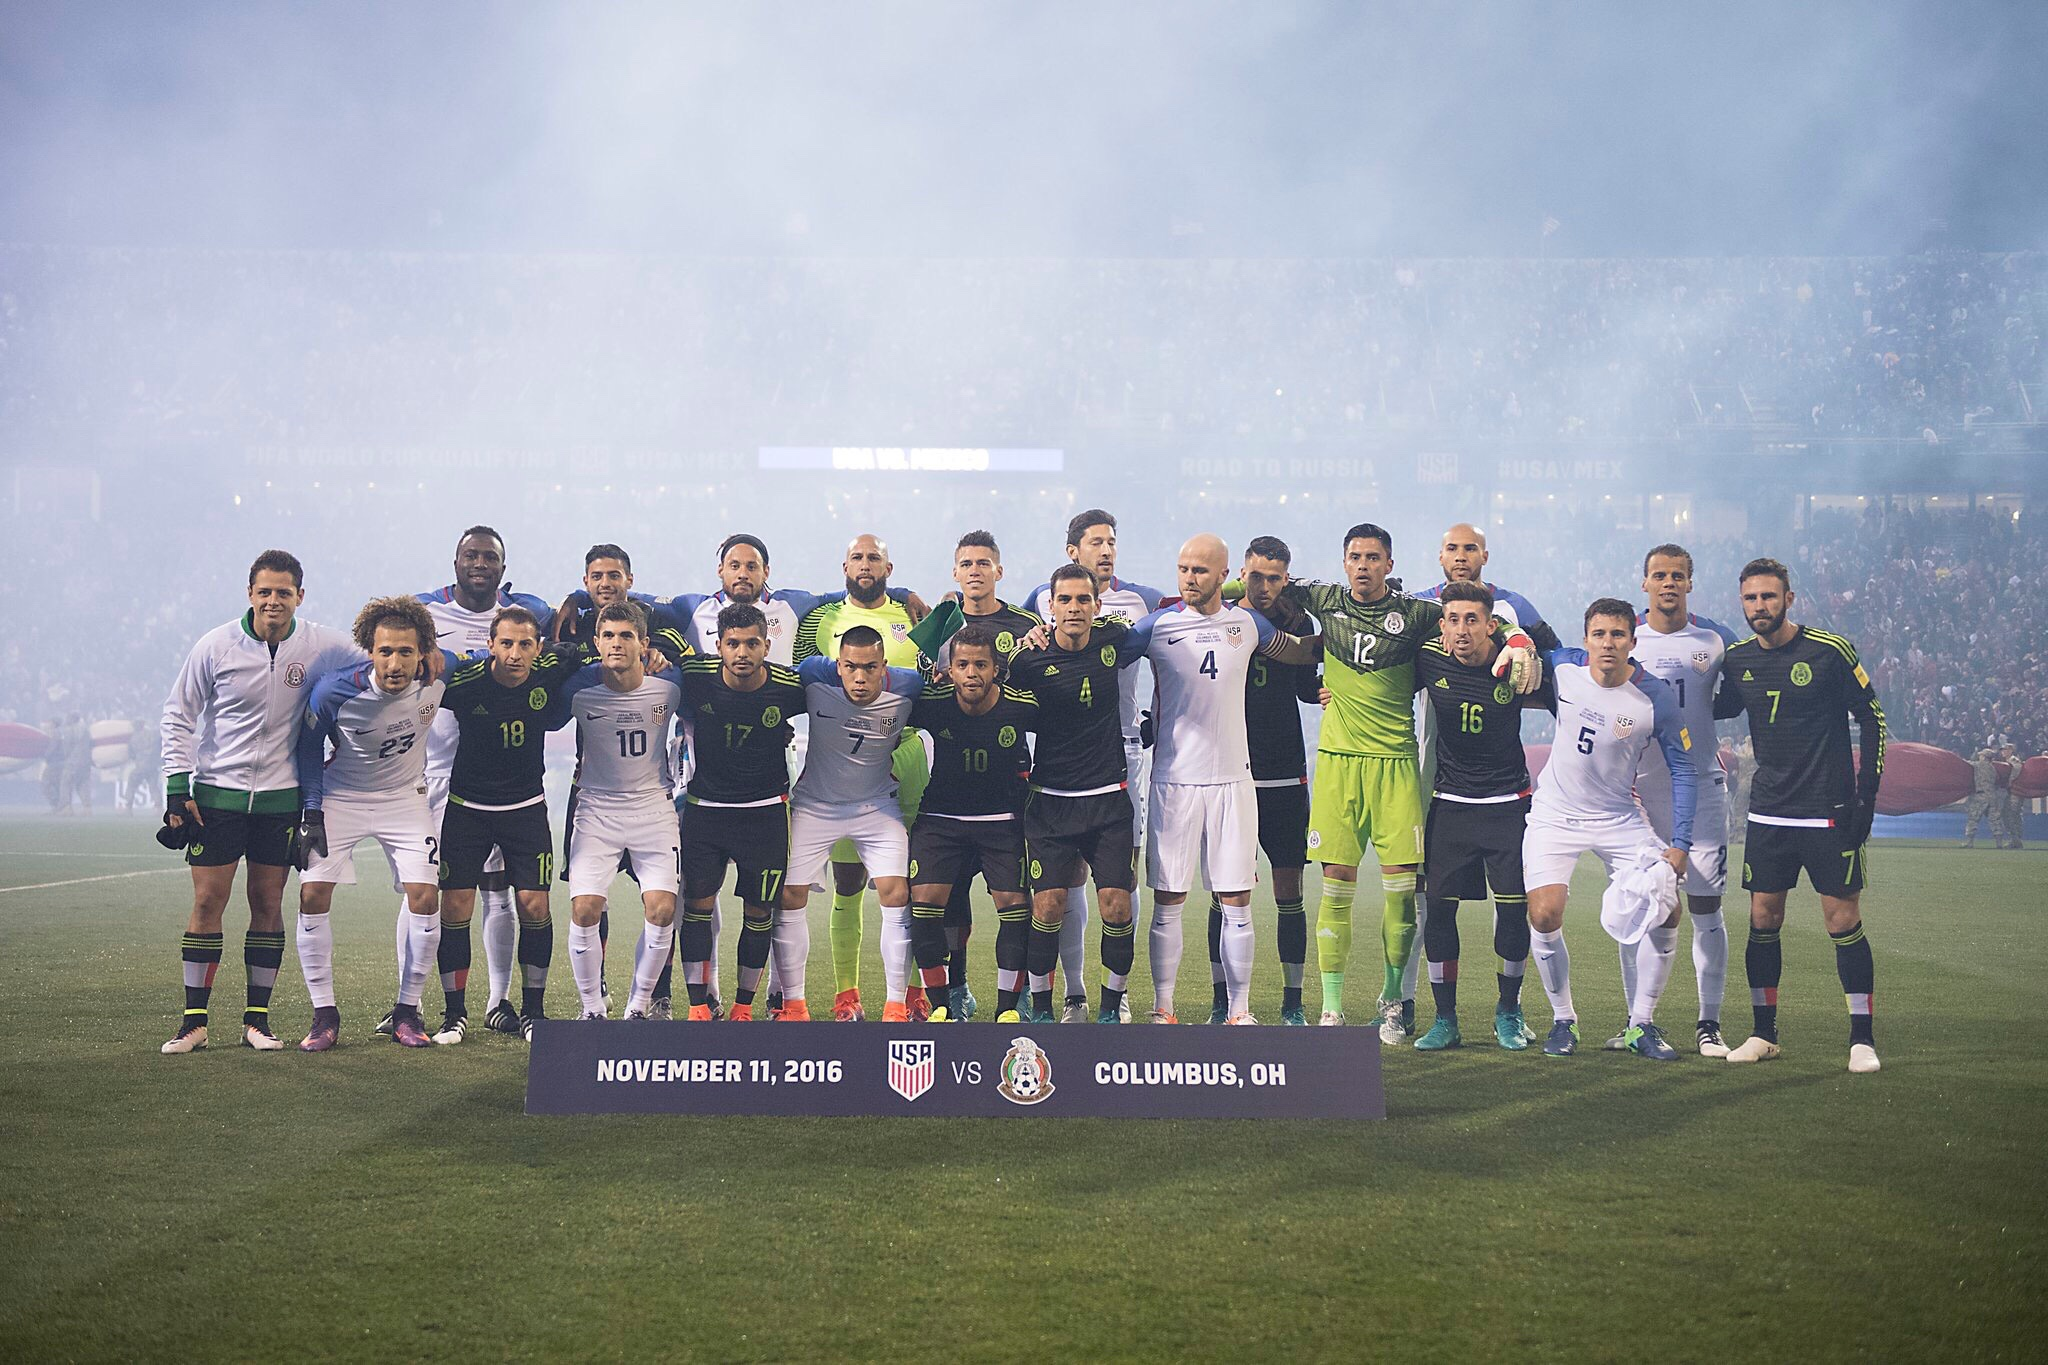 The players stand in unison before the match—in light of Trump's election? (Photo via  imgur )